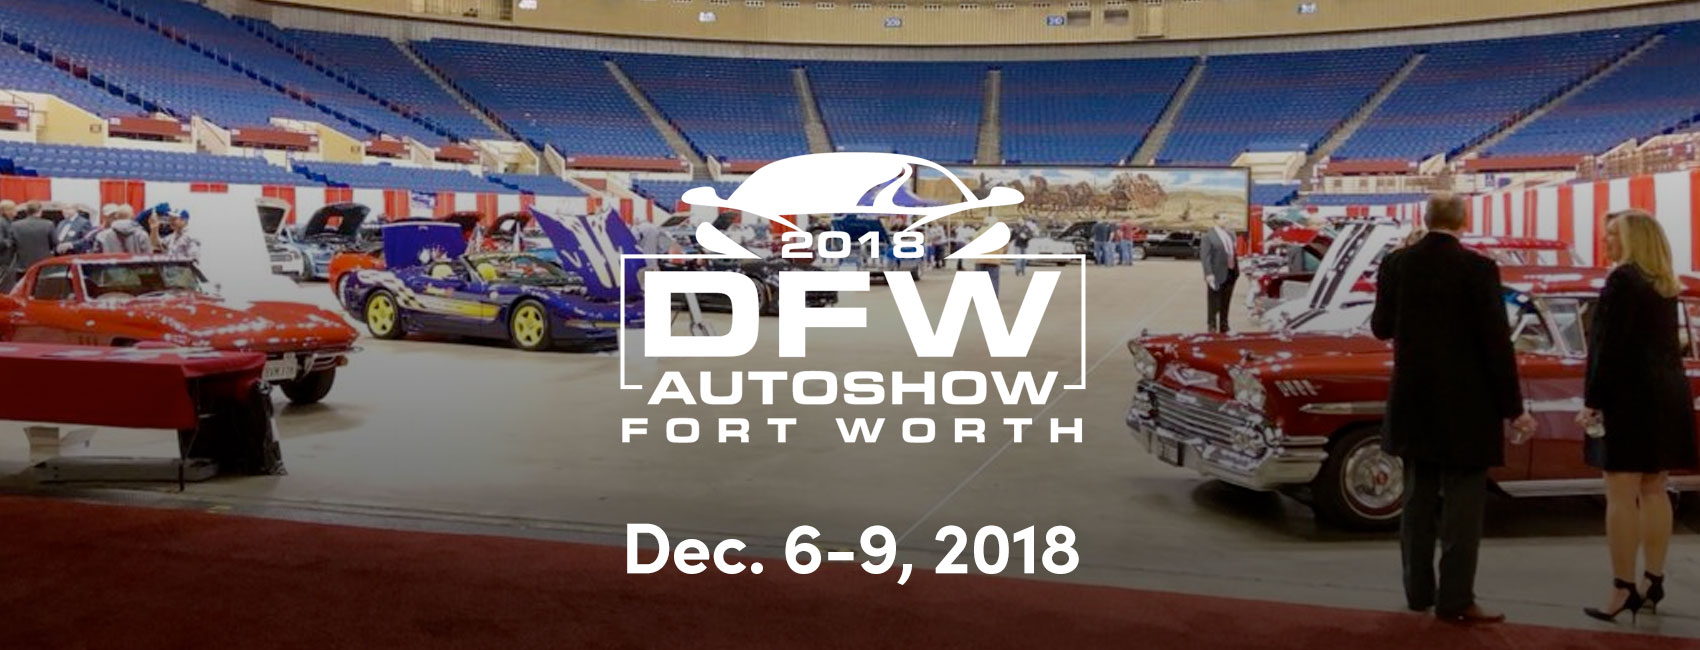 DFW Auto Show - How much are the tickets for the car show